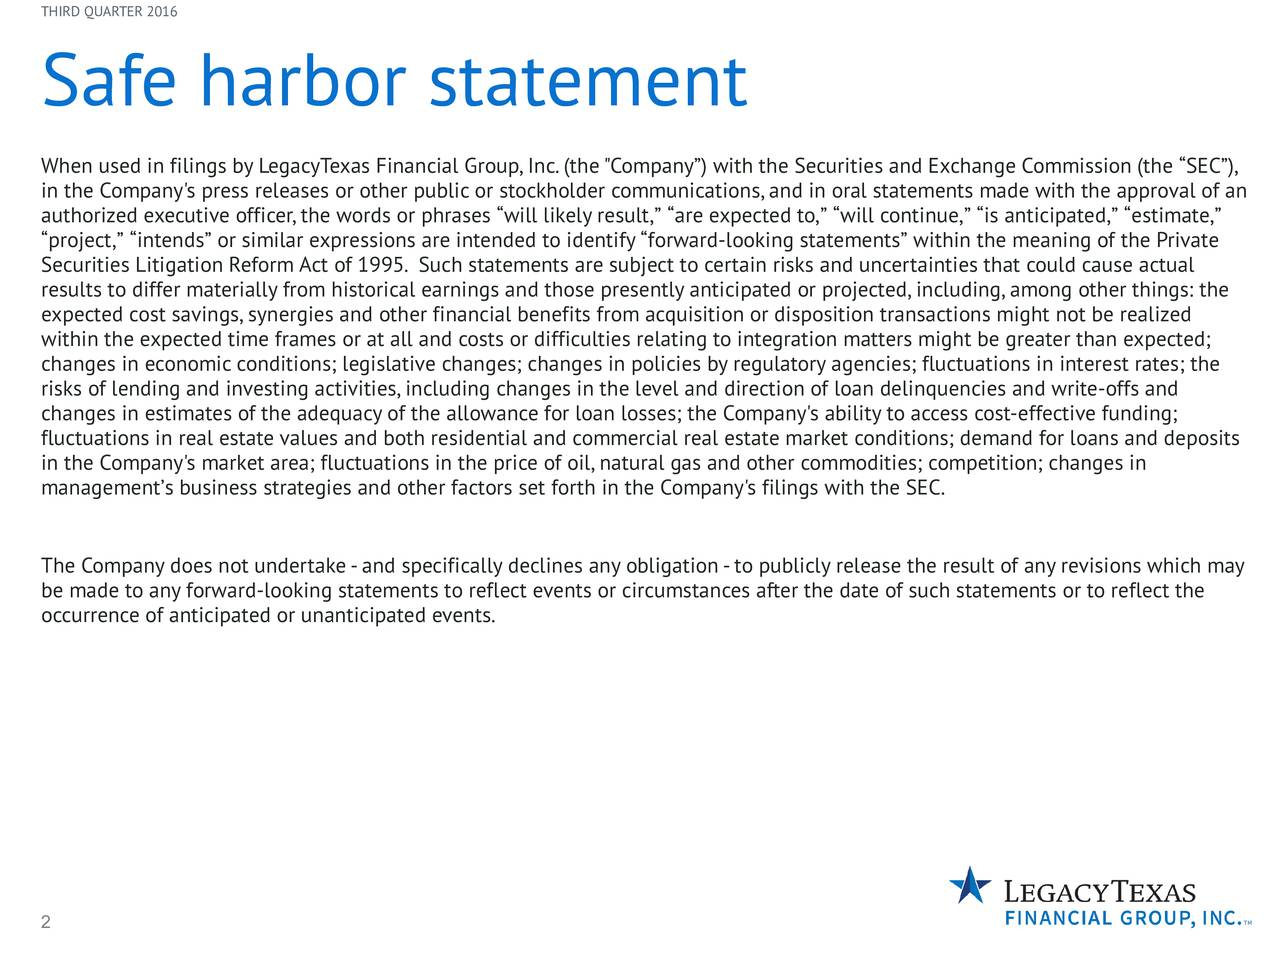 """Safe harbor statement When used in filings by LegacyTexas Financial Group,Inc.(the""""Company) with the Securities and Exchange Commission (the SEC), in the Company's press releases or other public or stockholder communications,and in oral statements made with the approval of an authorized executive officer,the words or phrases will likely result, are expected to, will continue, is anticipated, estimate, project, intends or similar expressions are intended to identify forward-looking statements within the meaning of the Private Securities Litigation Reform Act of 1995. Such statements are subject to certain risks and uncertainties that could cause actual results to differ materially from historical earnings and those presently anticipated or projected,including,among other things: the expected cost savings,synergies and other financial benefits from acquisition or disposition transactions might not be realized within the expected time frames or at all and costs or difficulties relating to integration matters might be greater than expected; changes in economic conditions; legislative changes; changes in policies by regulatory agencies; fluctuations in interest rates; the risks of lending and investing activities,including changes in the level and direction of loan delinquencies and write-offs and changes in estimates of the adequacy of the allowance for loan losses; the Company's ability to access cost-effective funding; fluctuations in real estate values and both residential and commercial real estate market conditions; demand for loans and deposits in the Company's market area; fluctuations in the price of oil,natural gas and other commodities; competition; changes in managements business strategies and other factors set forth in the Company's filings with the SEC. The Company does not undertake-and specifically declines any obligation-to publicly release the result of any revisions which may be made to any forward-looking statements to reflect events or circumstances"""